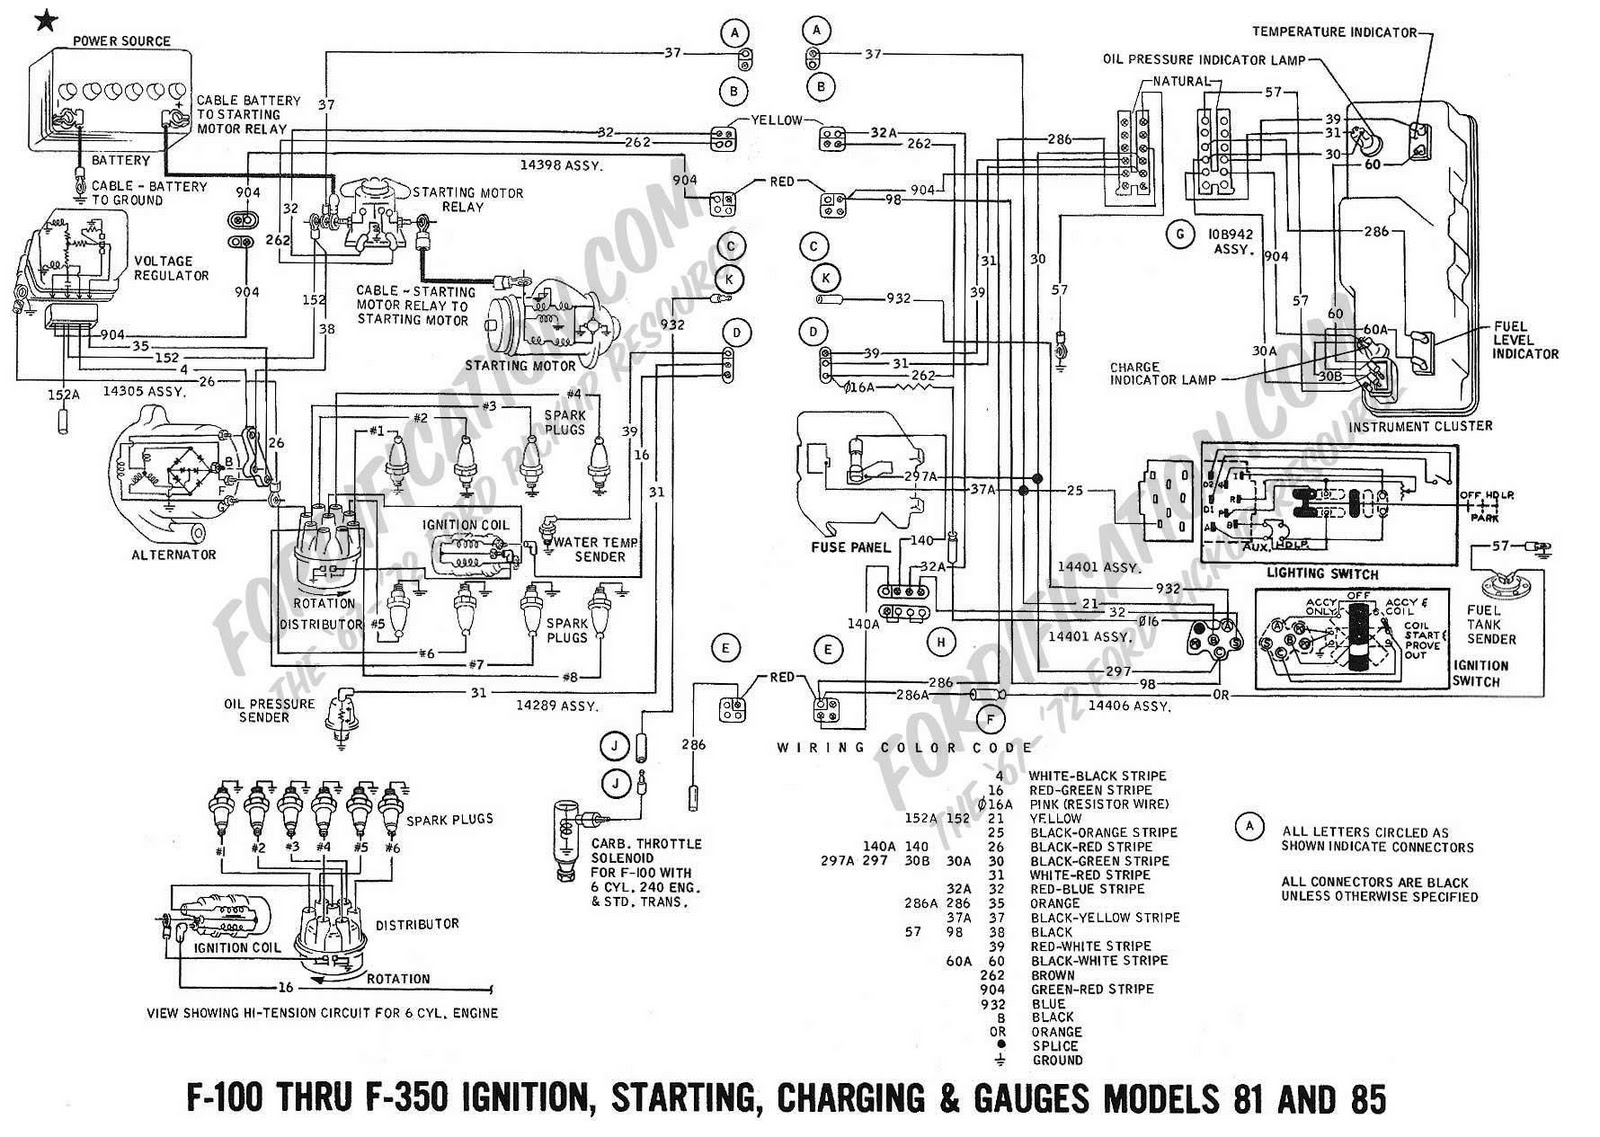 ford f1 wiring diagram wiring diagram third level 1946 chevy truck wiring diagram 1969 f100 wiring [ 1600 x 1137 Pixel ]